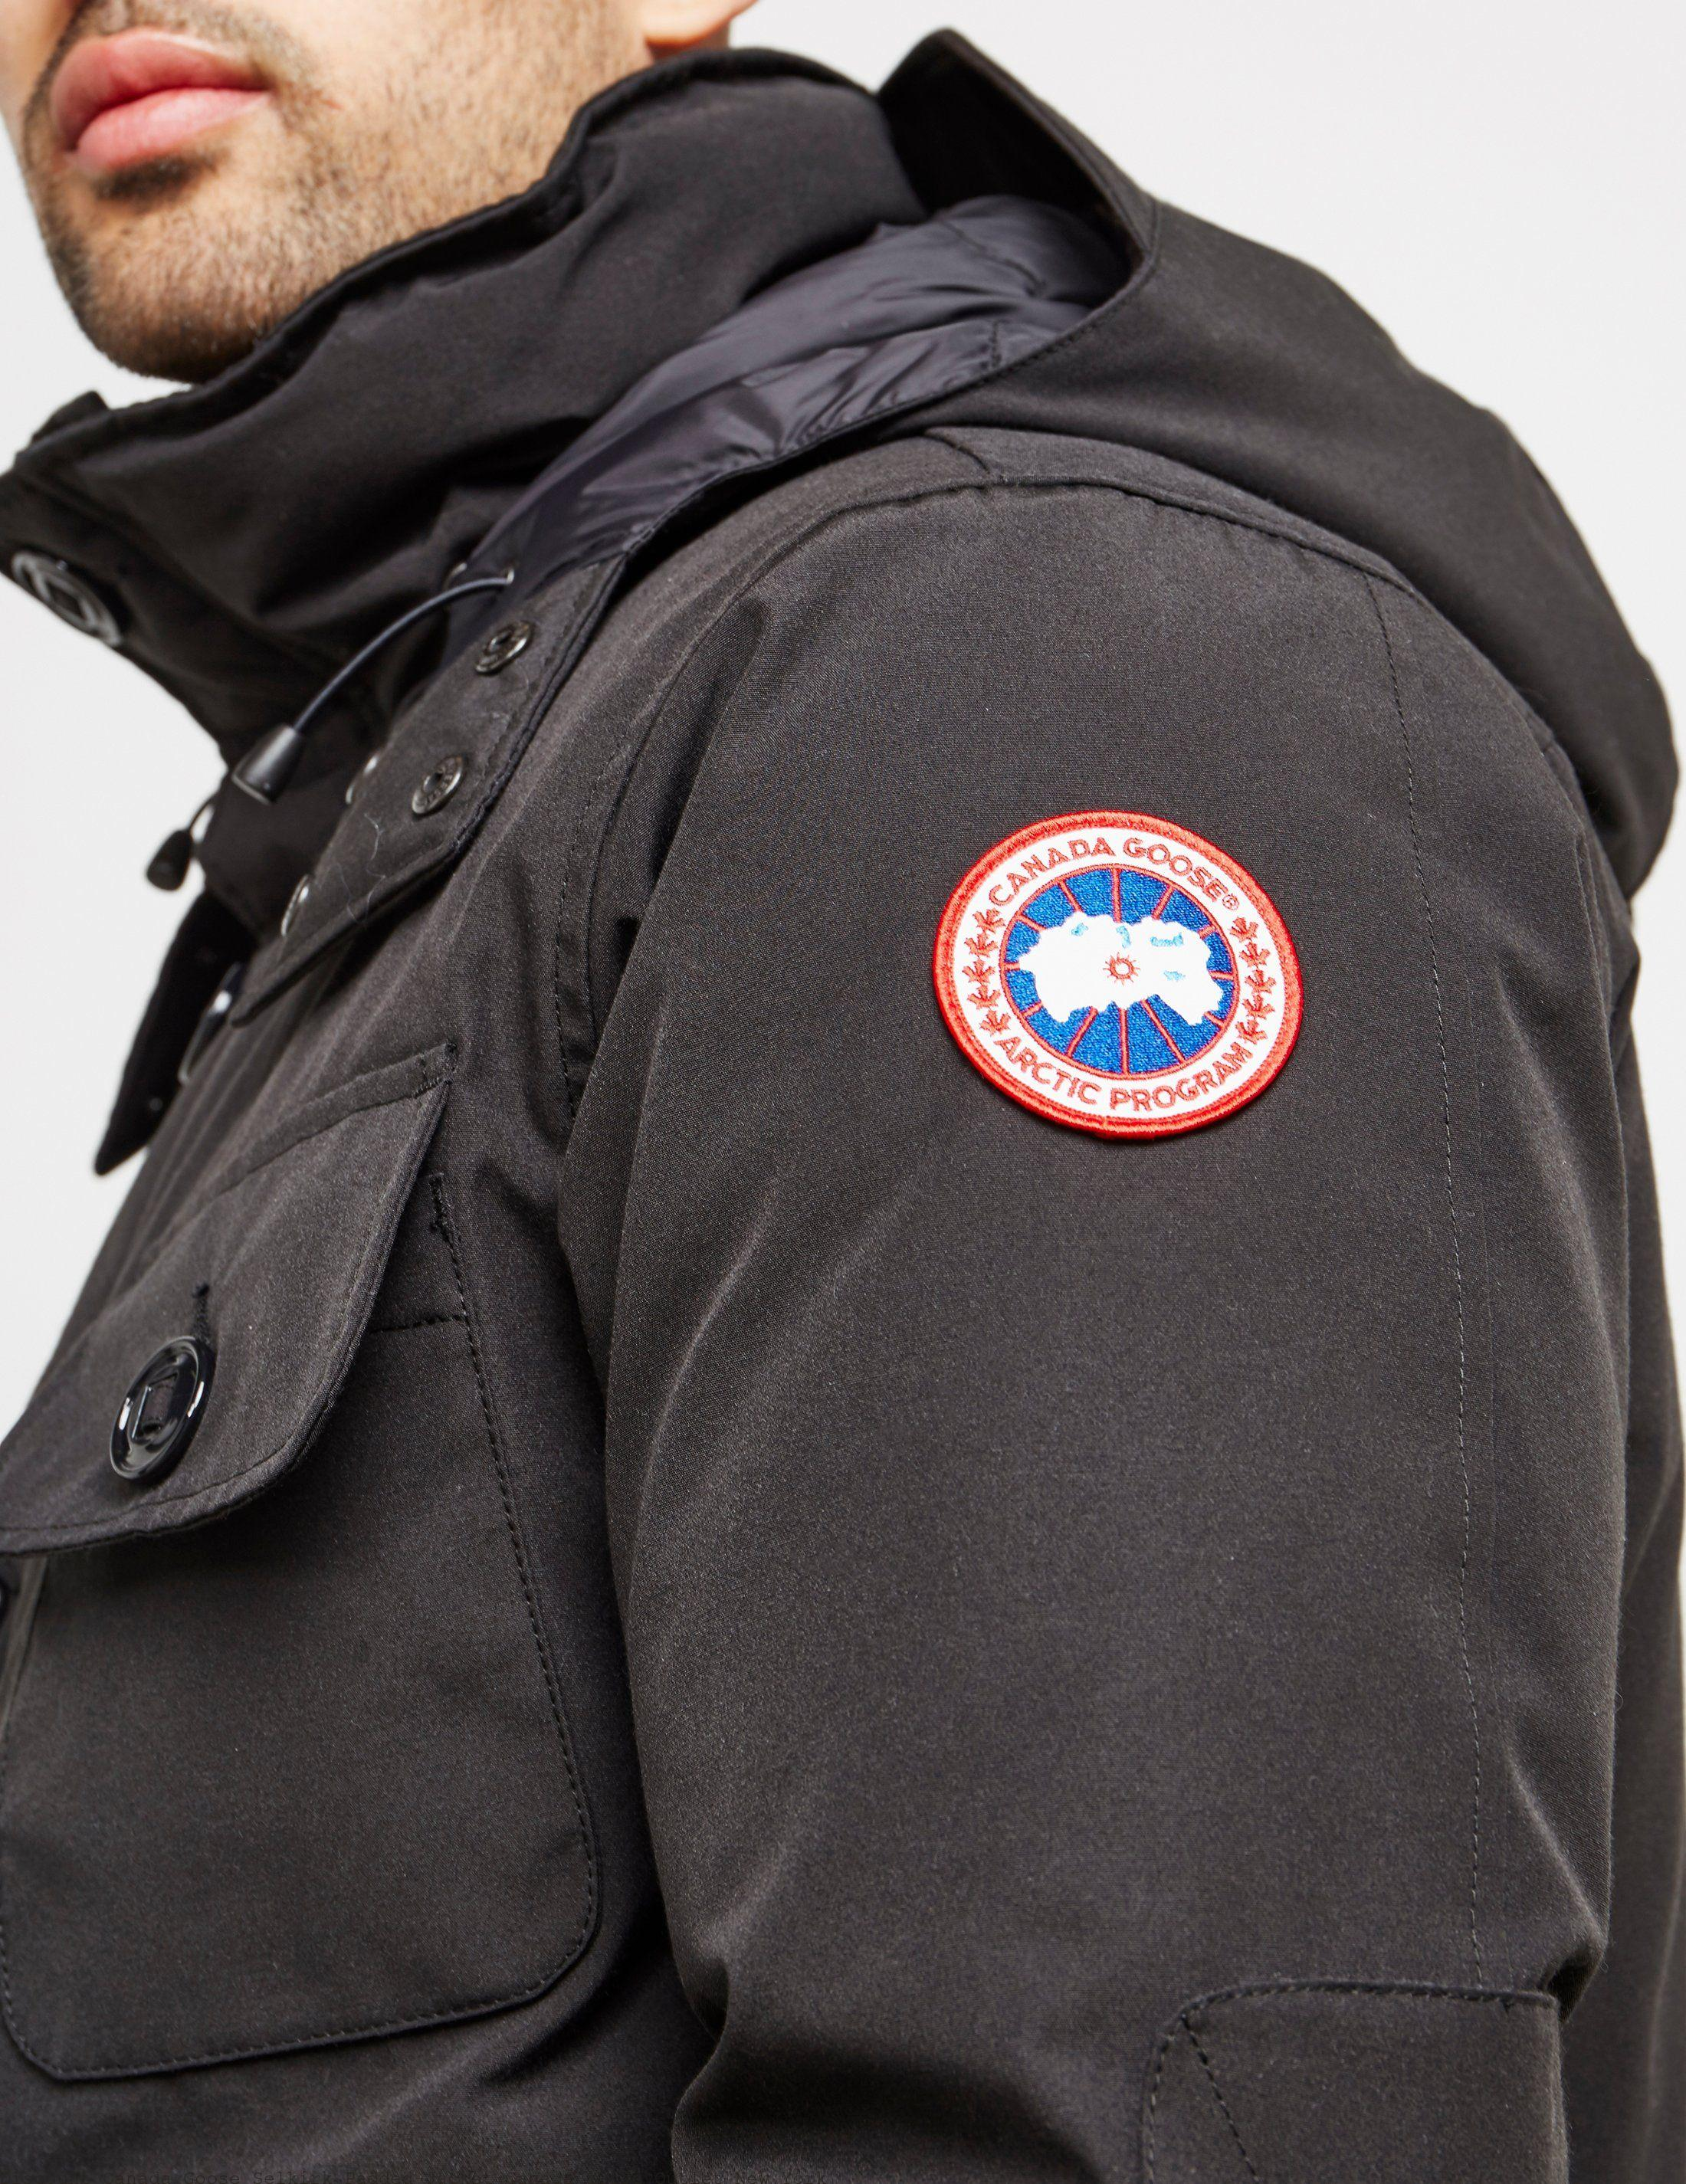 da10a81cb28 Discount Canada Goose Selkirk Padded Jacket Canada Goose Outlet New York